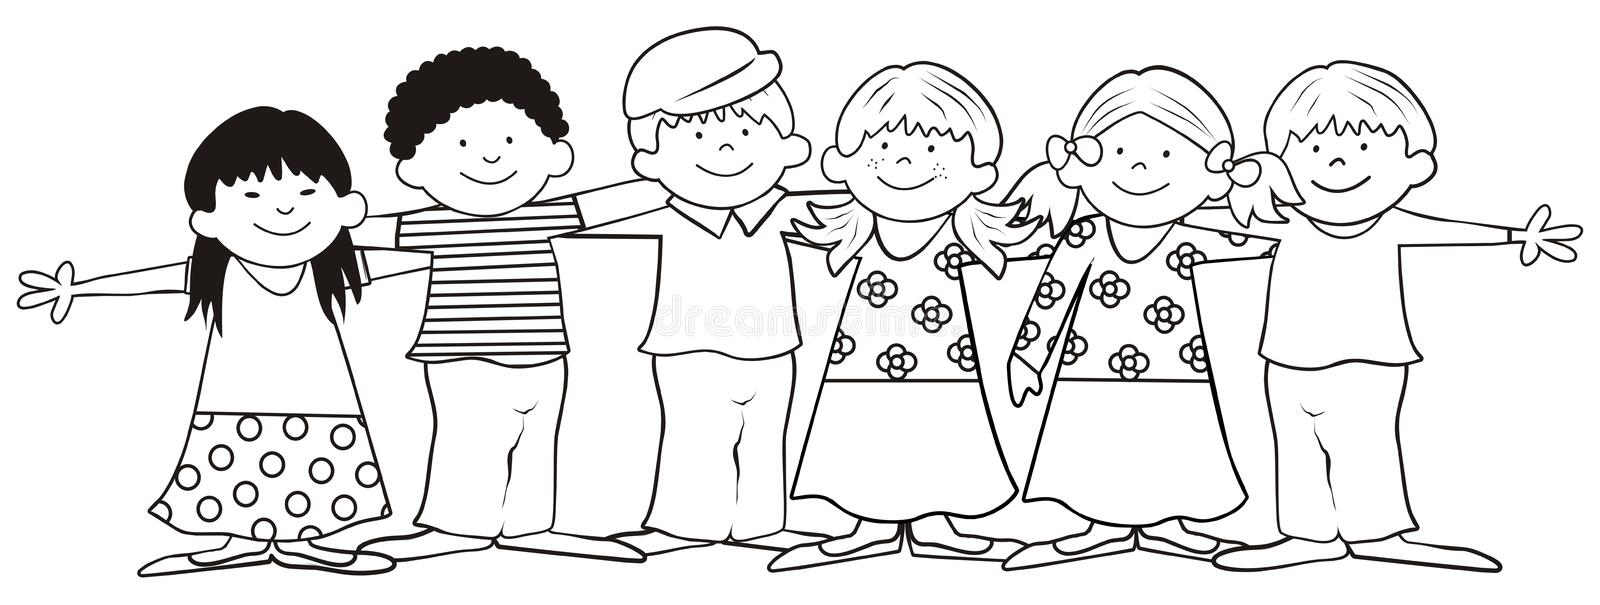 Children-coloring book stock vector. Illustration of dress - 31866030